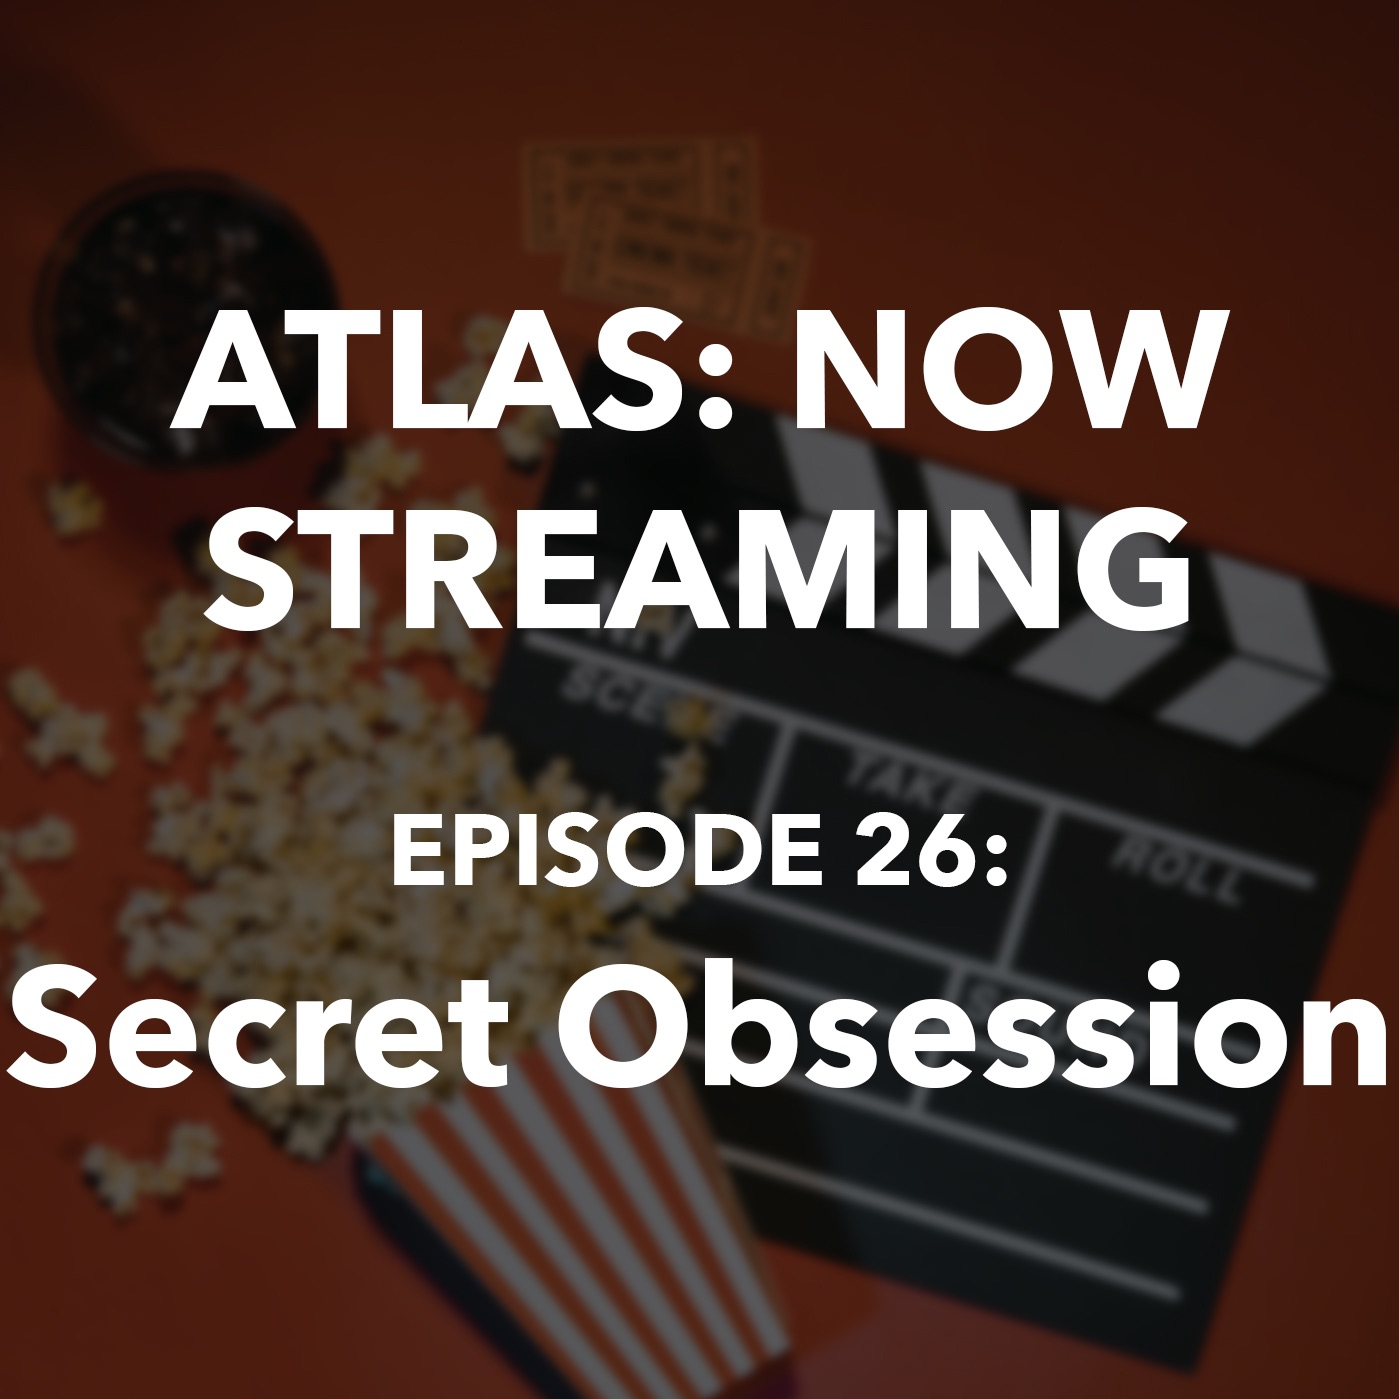 Secret Obsession - Atlas: Now Streaming EP 26